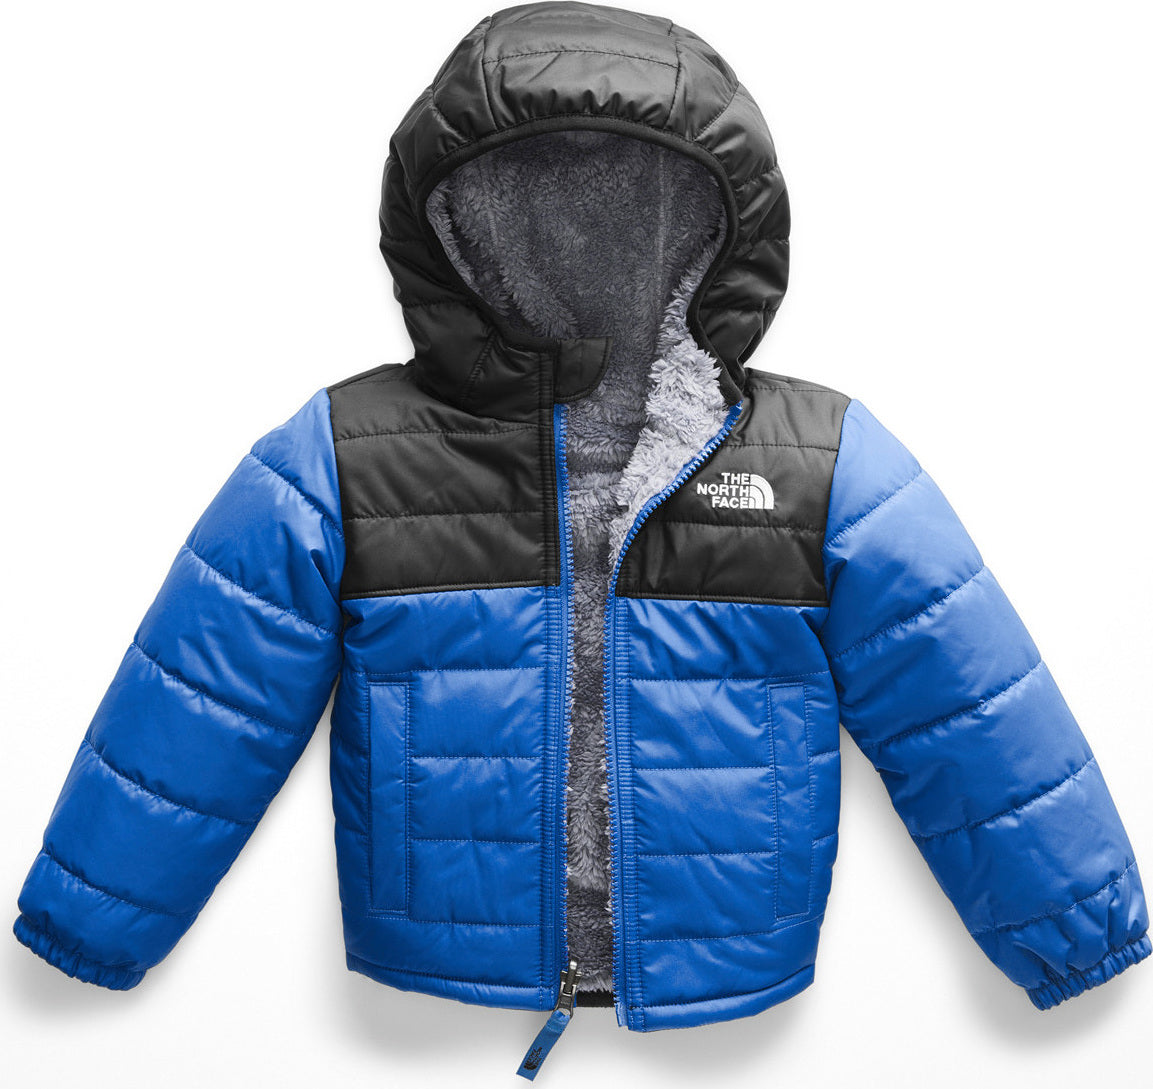 21be8cb02d0 The North Face Toddler Boy s Reversible Mount Chimborazo Hoodie ...